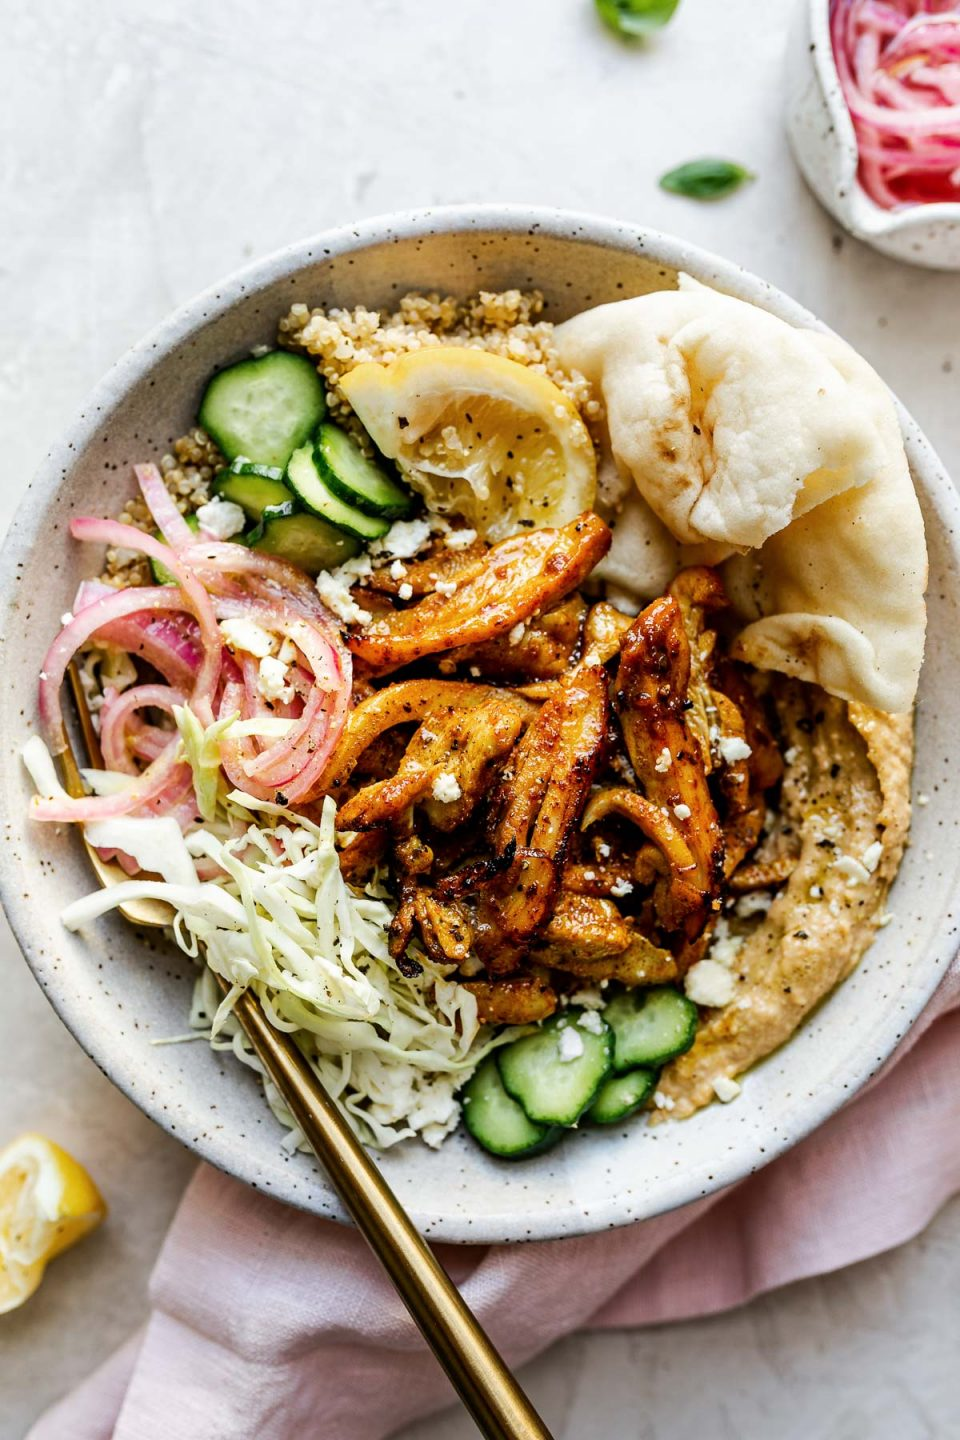 Chicken Shawarma Hummus Bowl with quinoa, cucumbers, pickled red onion, shredded cabbage, & naan bread shown in a speckled gray ceramic bowl. The bowl sits atop a creamy cement surface, surrounded by lemon wedges, fresh basil leaves, a small bowl of pickled red onions, & a pink linen napkin.